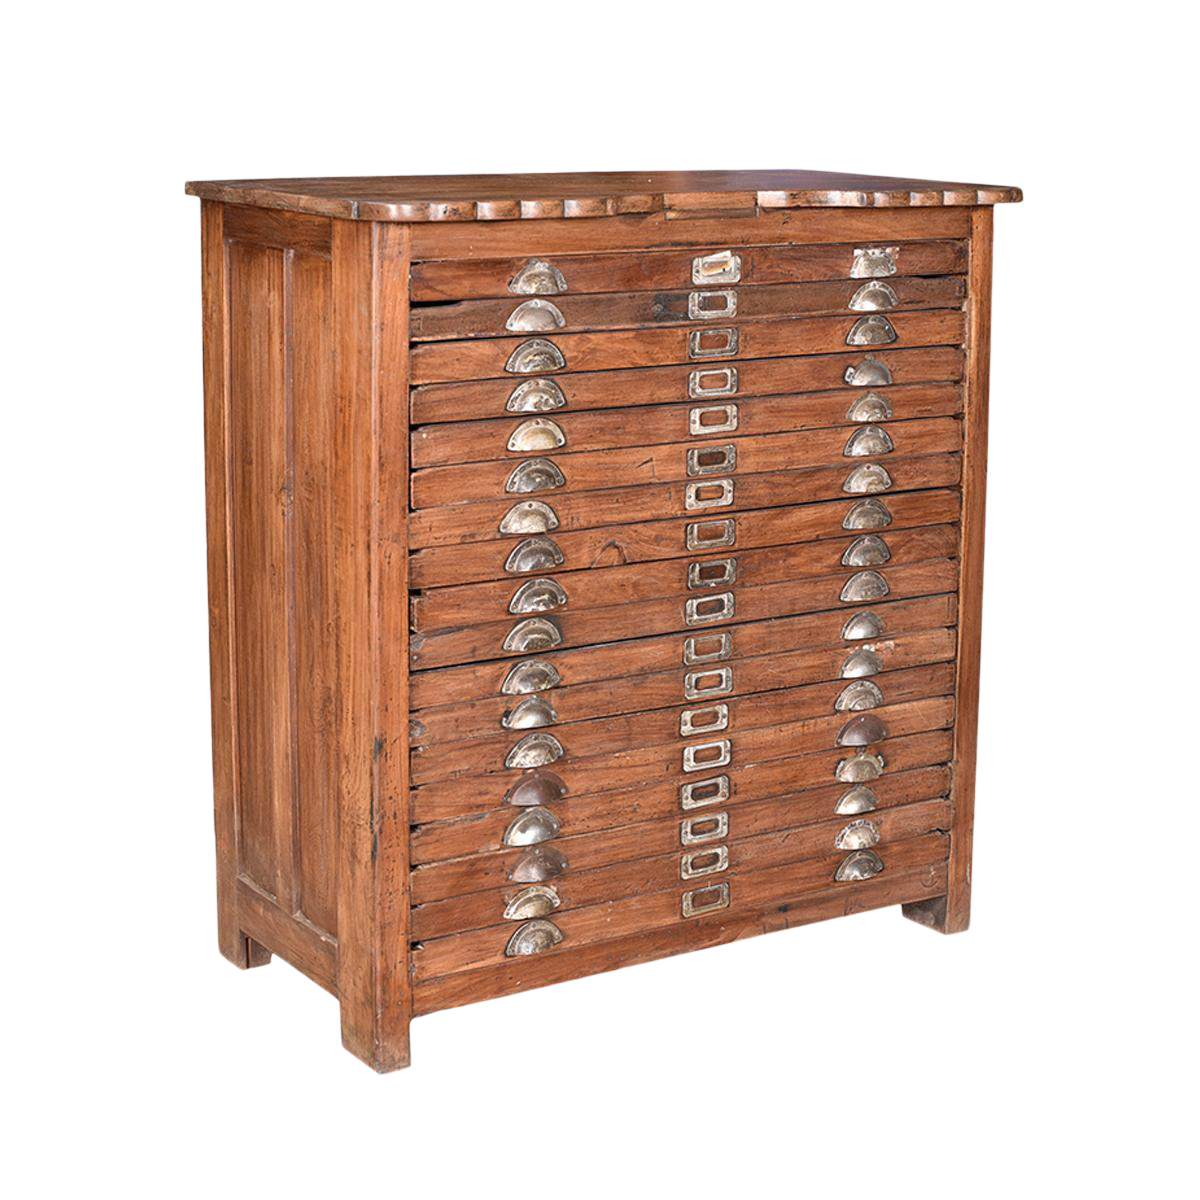 Traditional vintage map filing chest chairish for Kitchen cabinet trends 2018 combined with antique map wall art